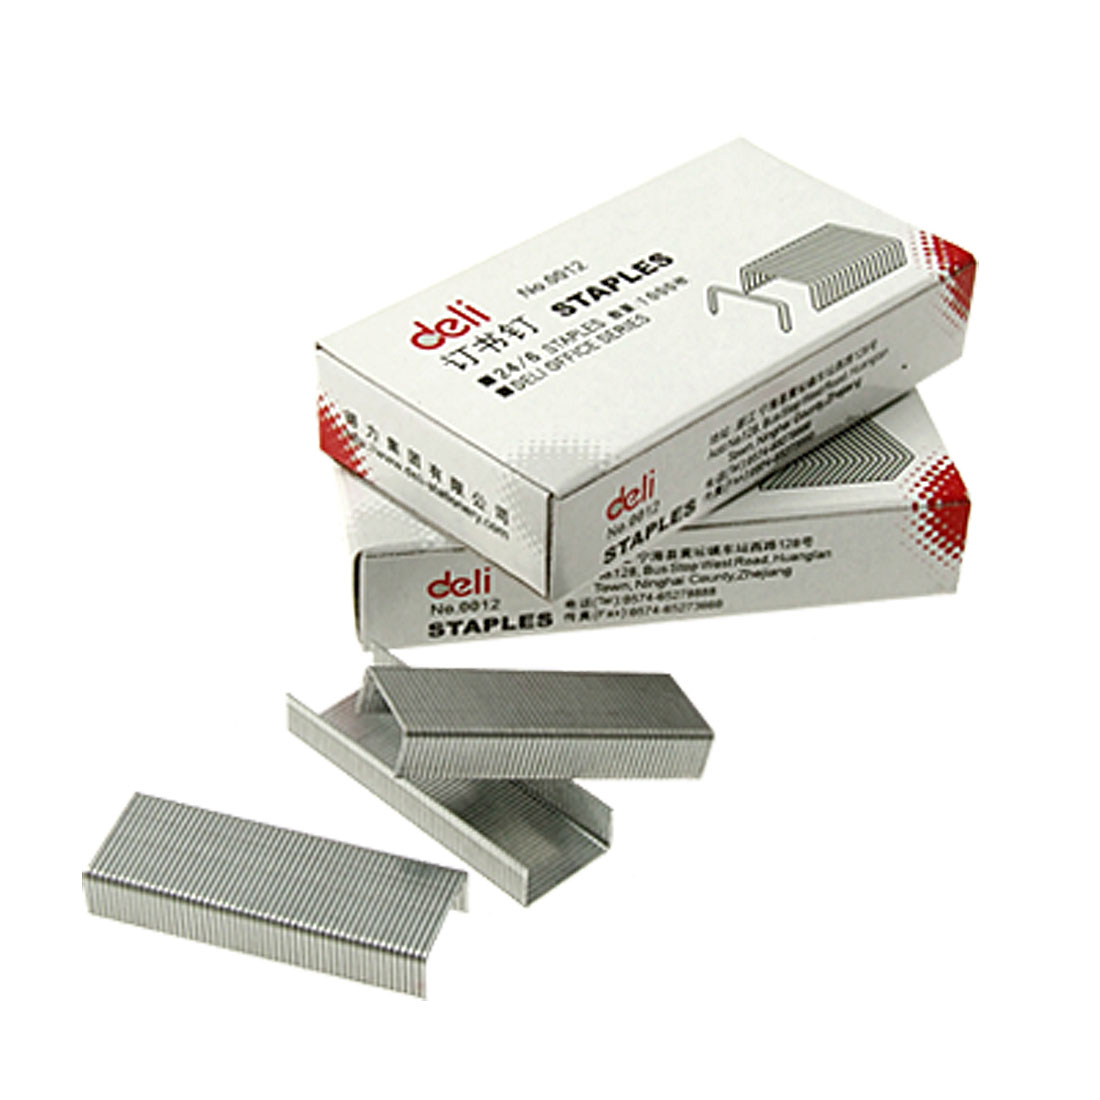 Steel Staples Office Paper Document Fastener No.0012